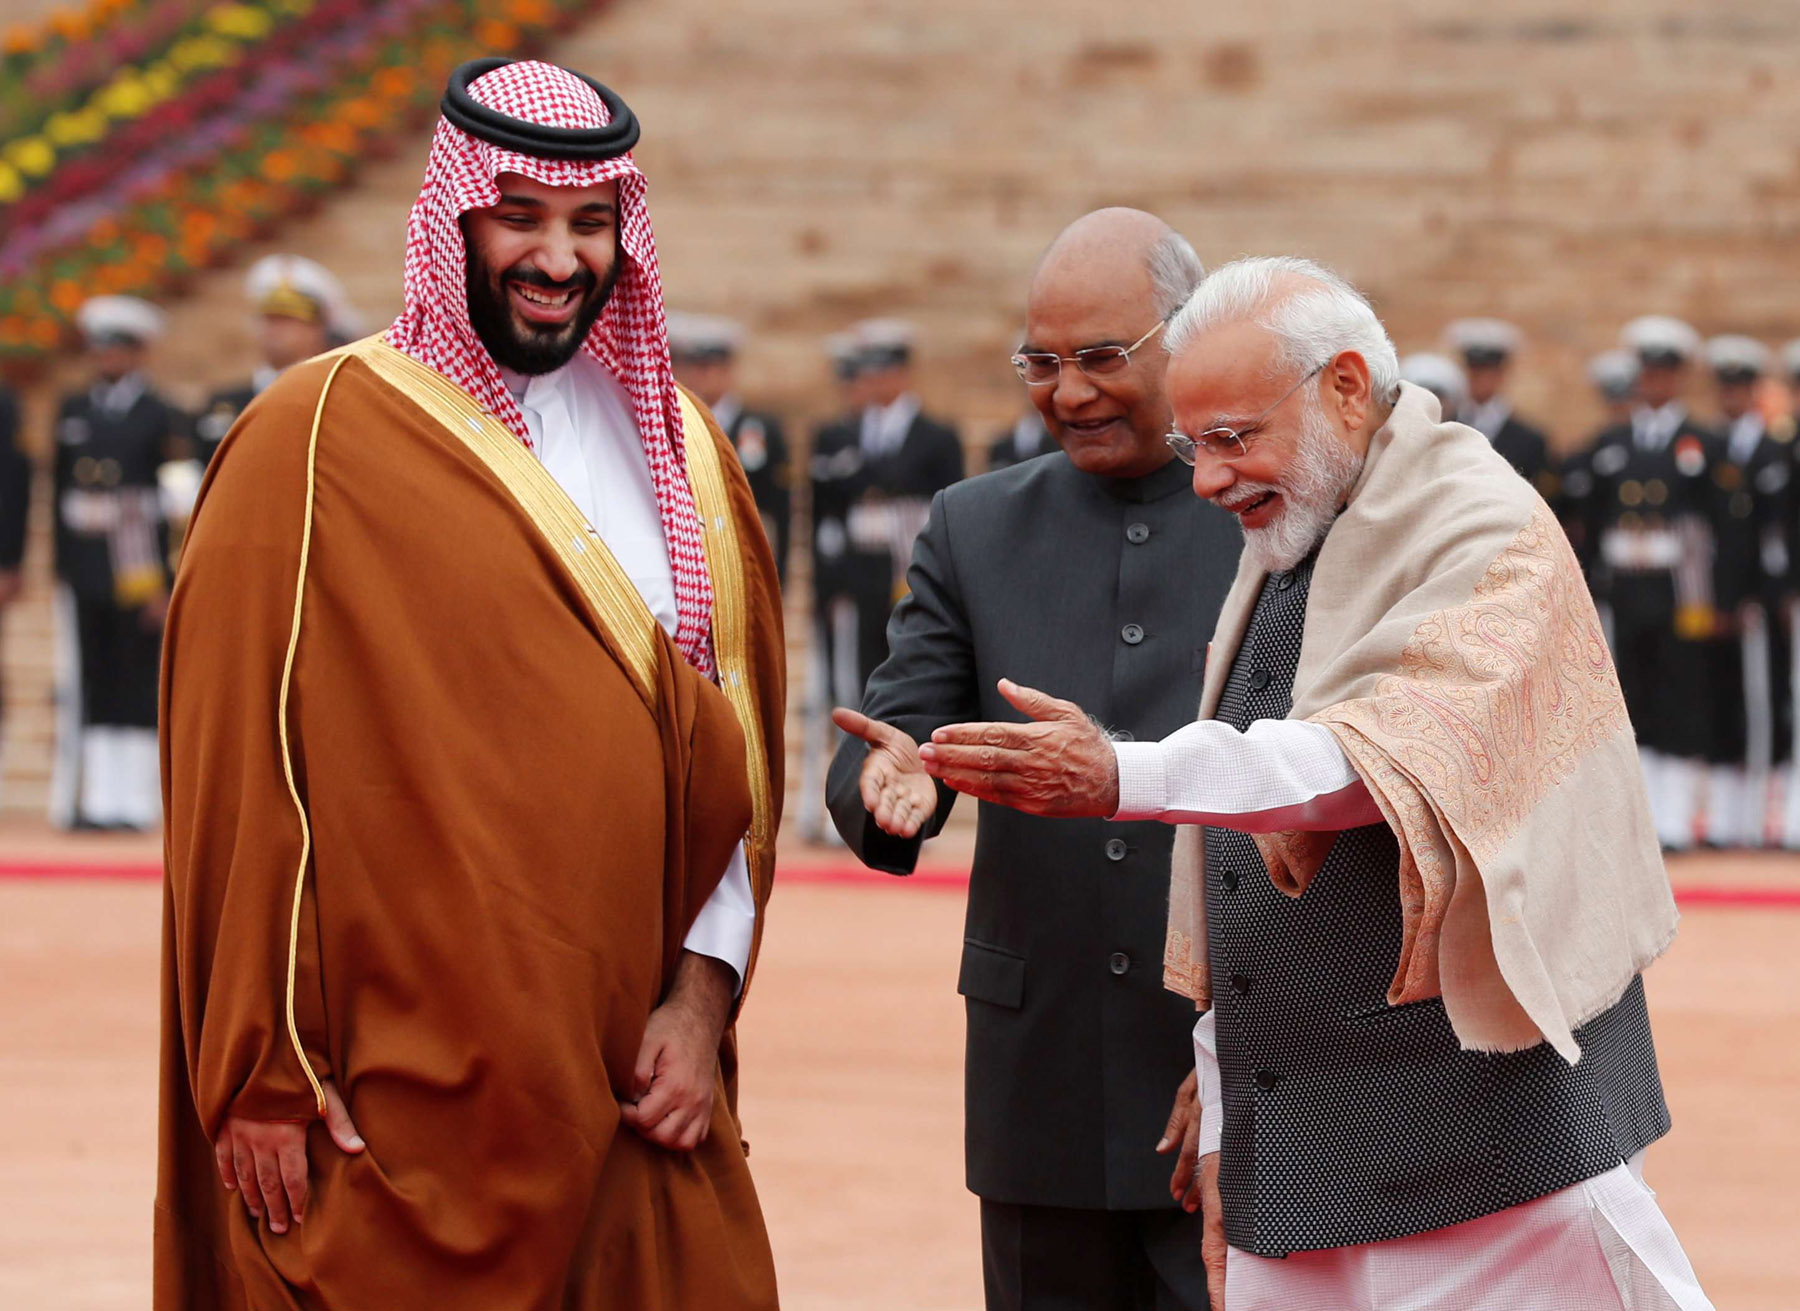 Saudi Crown Prince Mohammed bin Salman bin Abdulaziz (L) is welcomed by India's Prime Minister Narendra Modi and President Ram Nath Kovind at Rashtrapati Bhavan presidential palace in New Delhi, February 20. (Reuters)